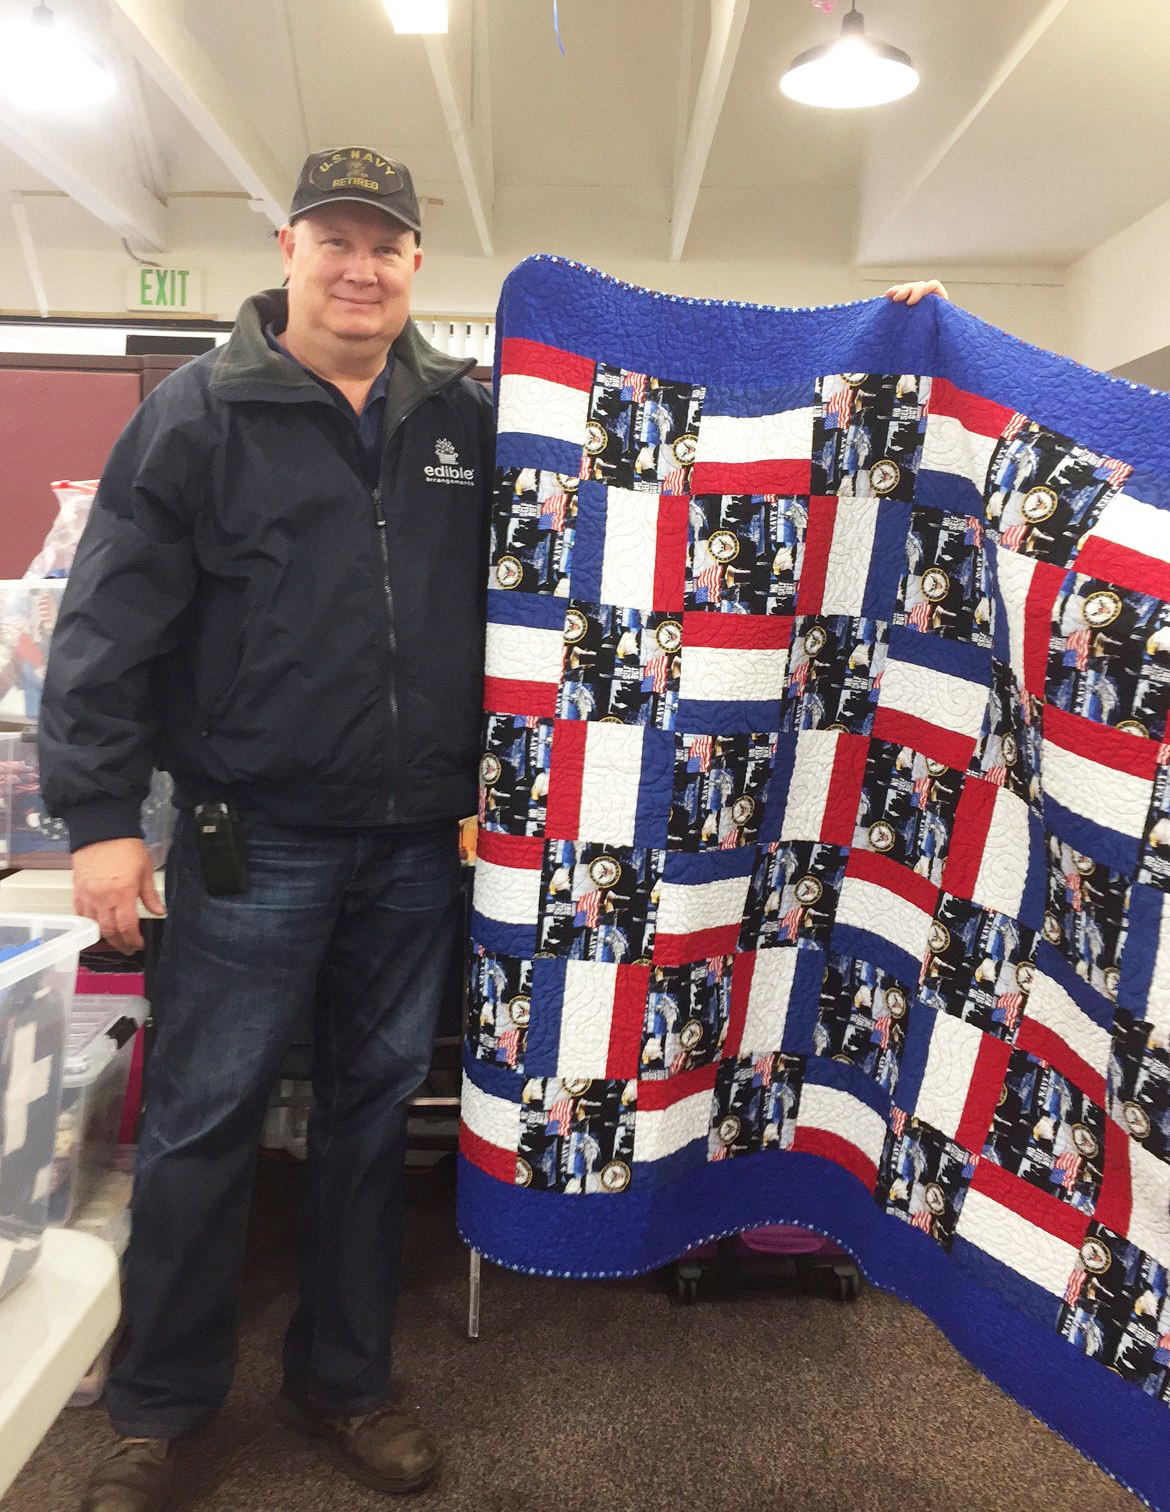 Navy veteran Jim Short, who recently received a quilt from the group.